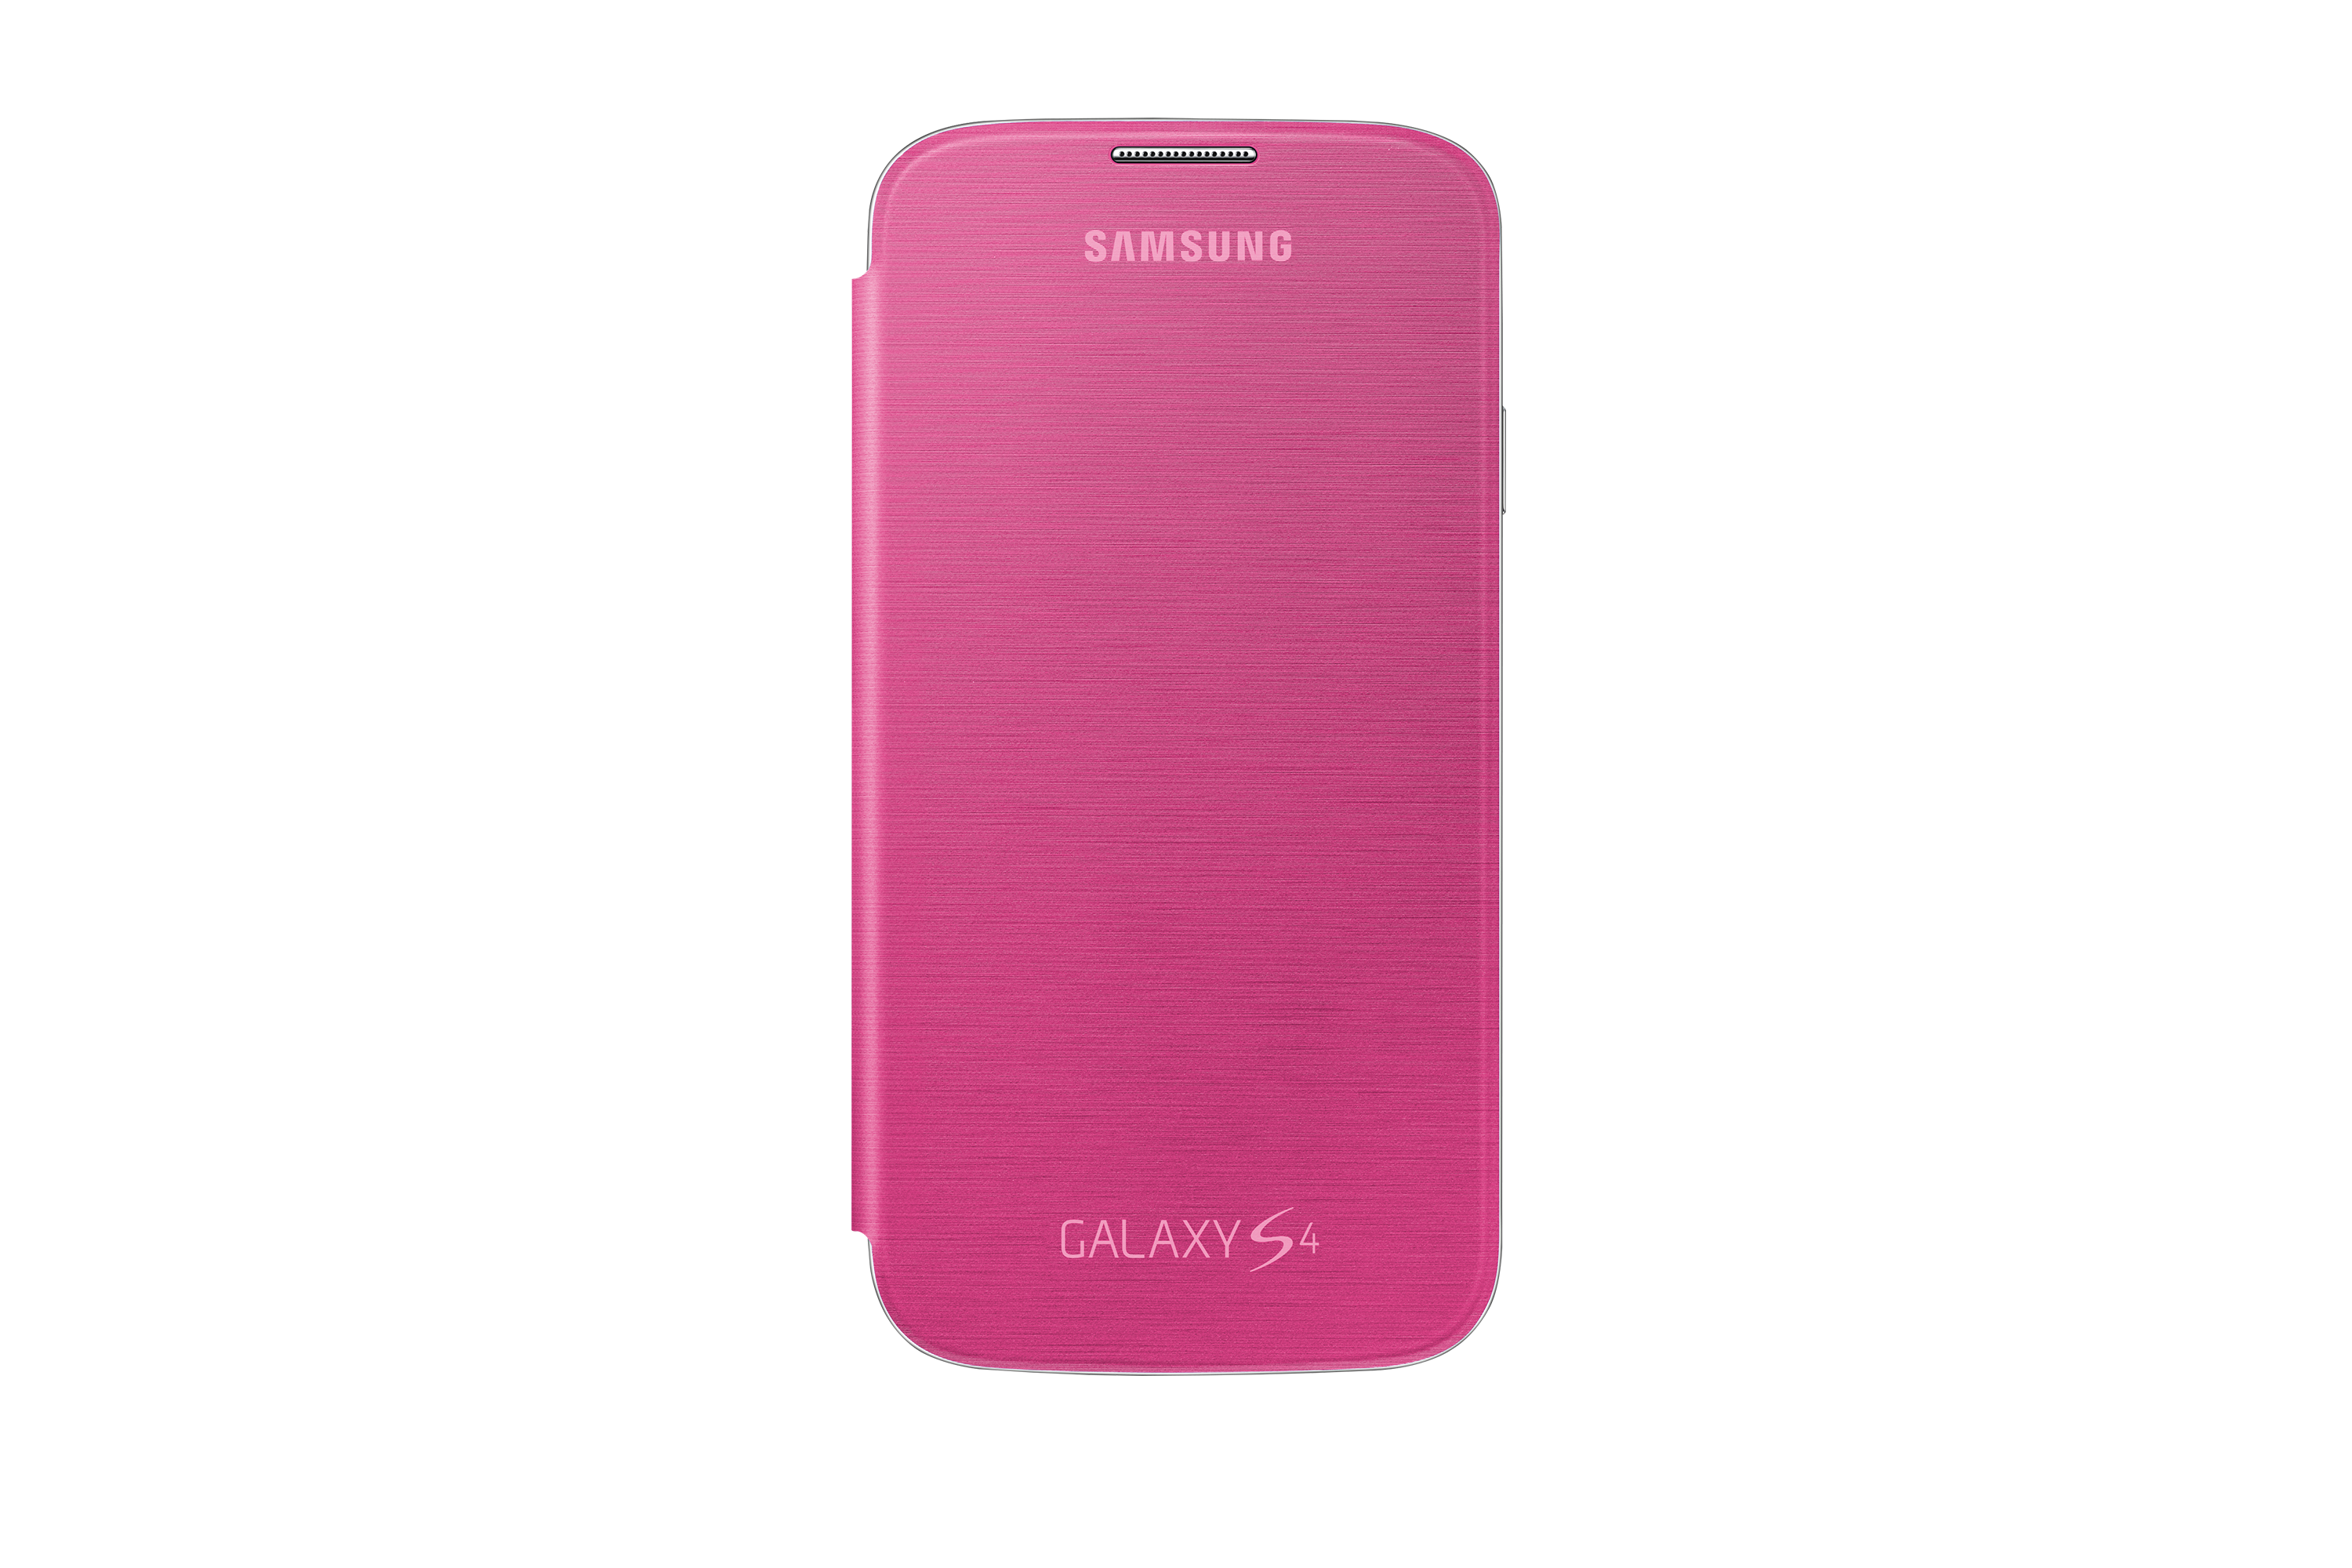 EF-FI950B Galaxy S4 Flip Cover